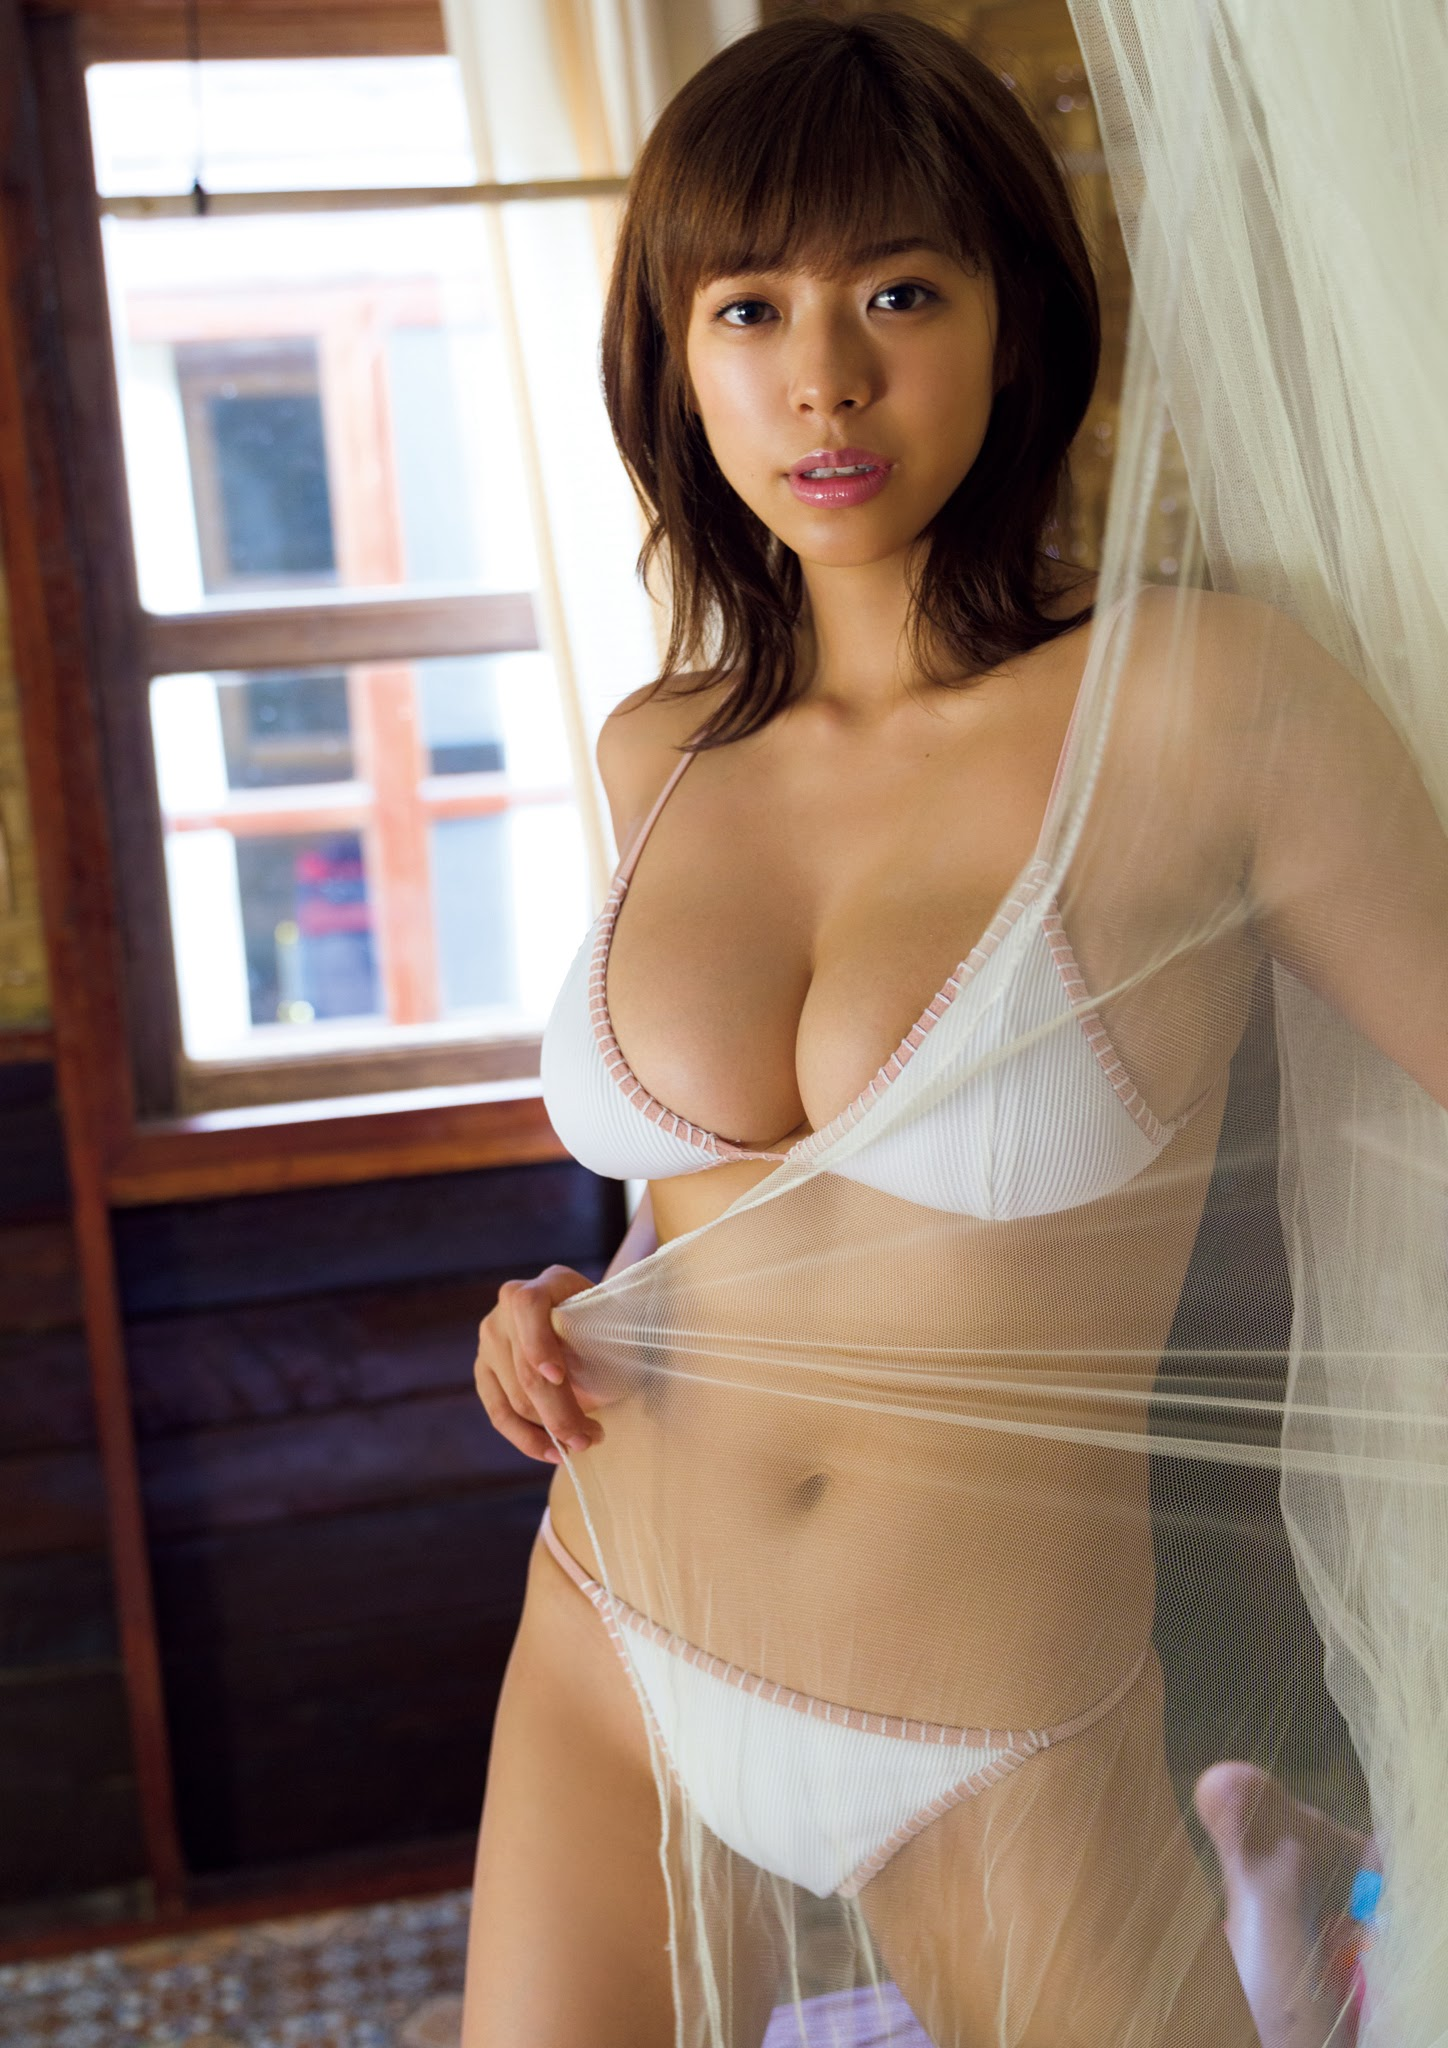 Super body of H cup Minami Wachi 2020 that exposes body and mind in tropical Thailand057